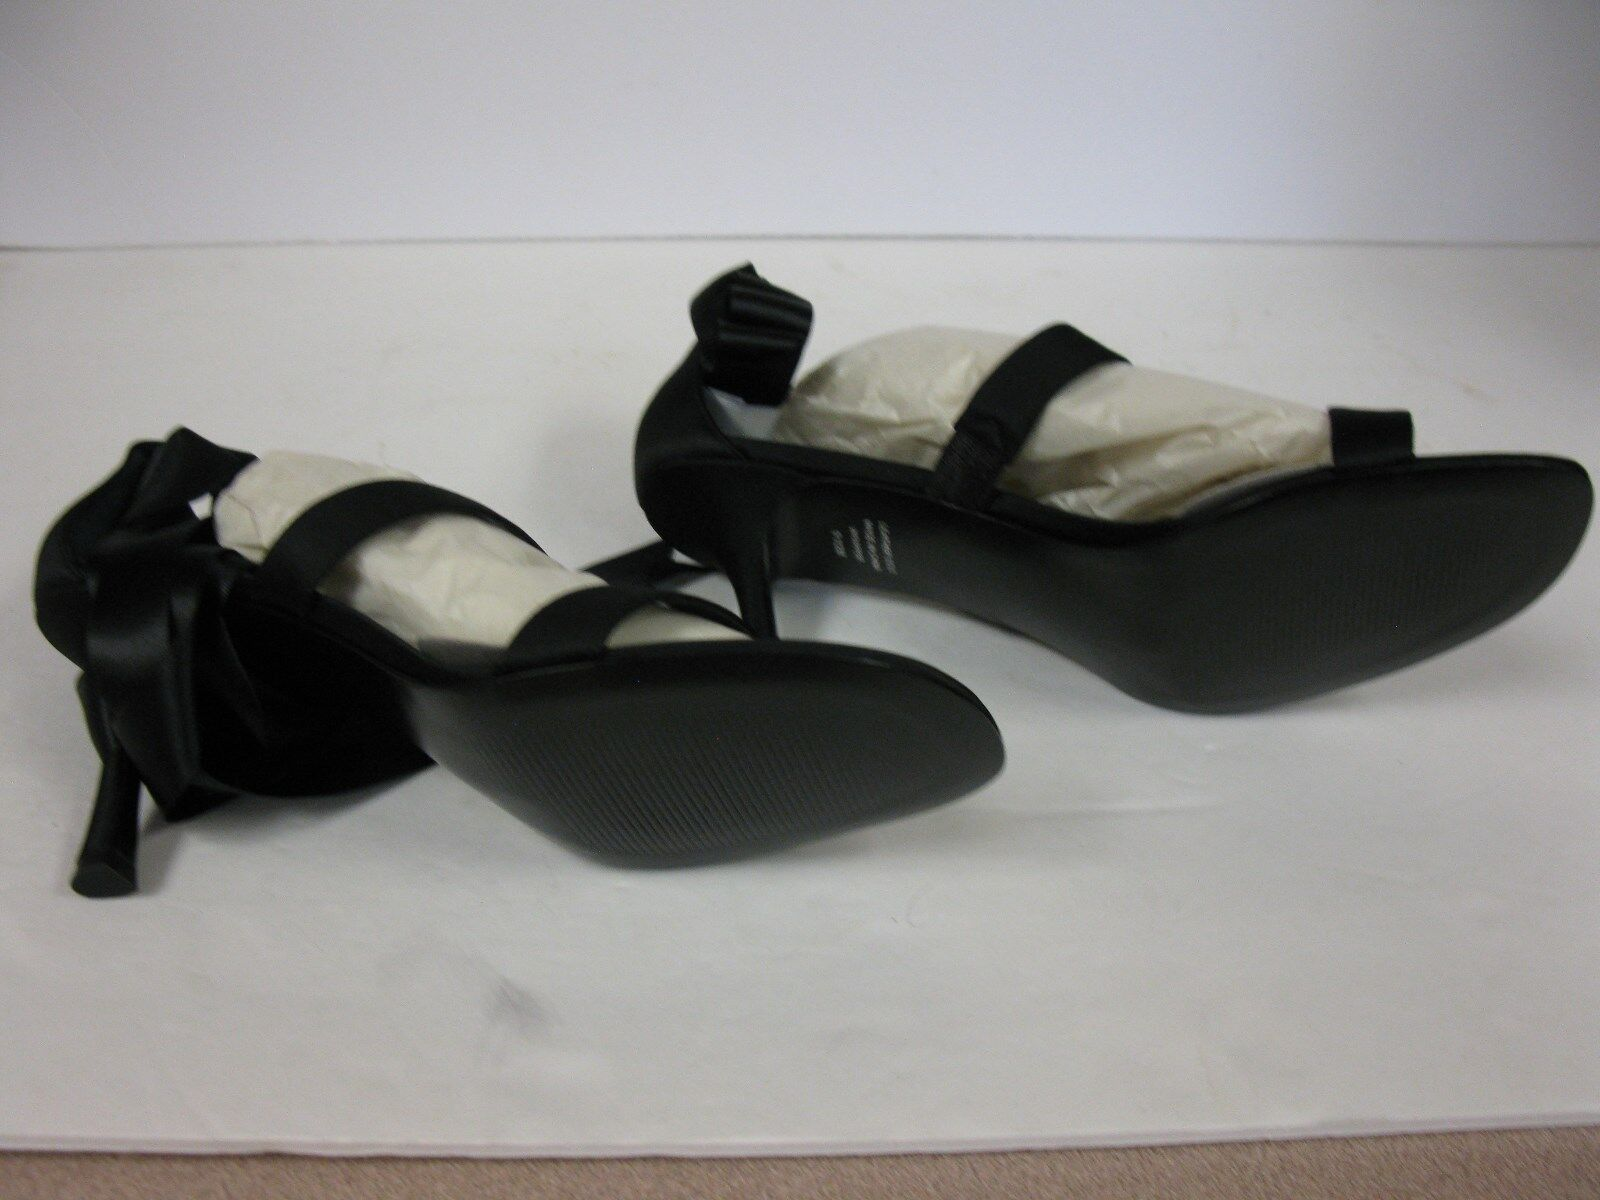 Lord And Taylor Black Satin Wrapper Heels sandals. size size size 9.5 95e3a4